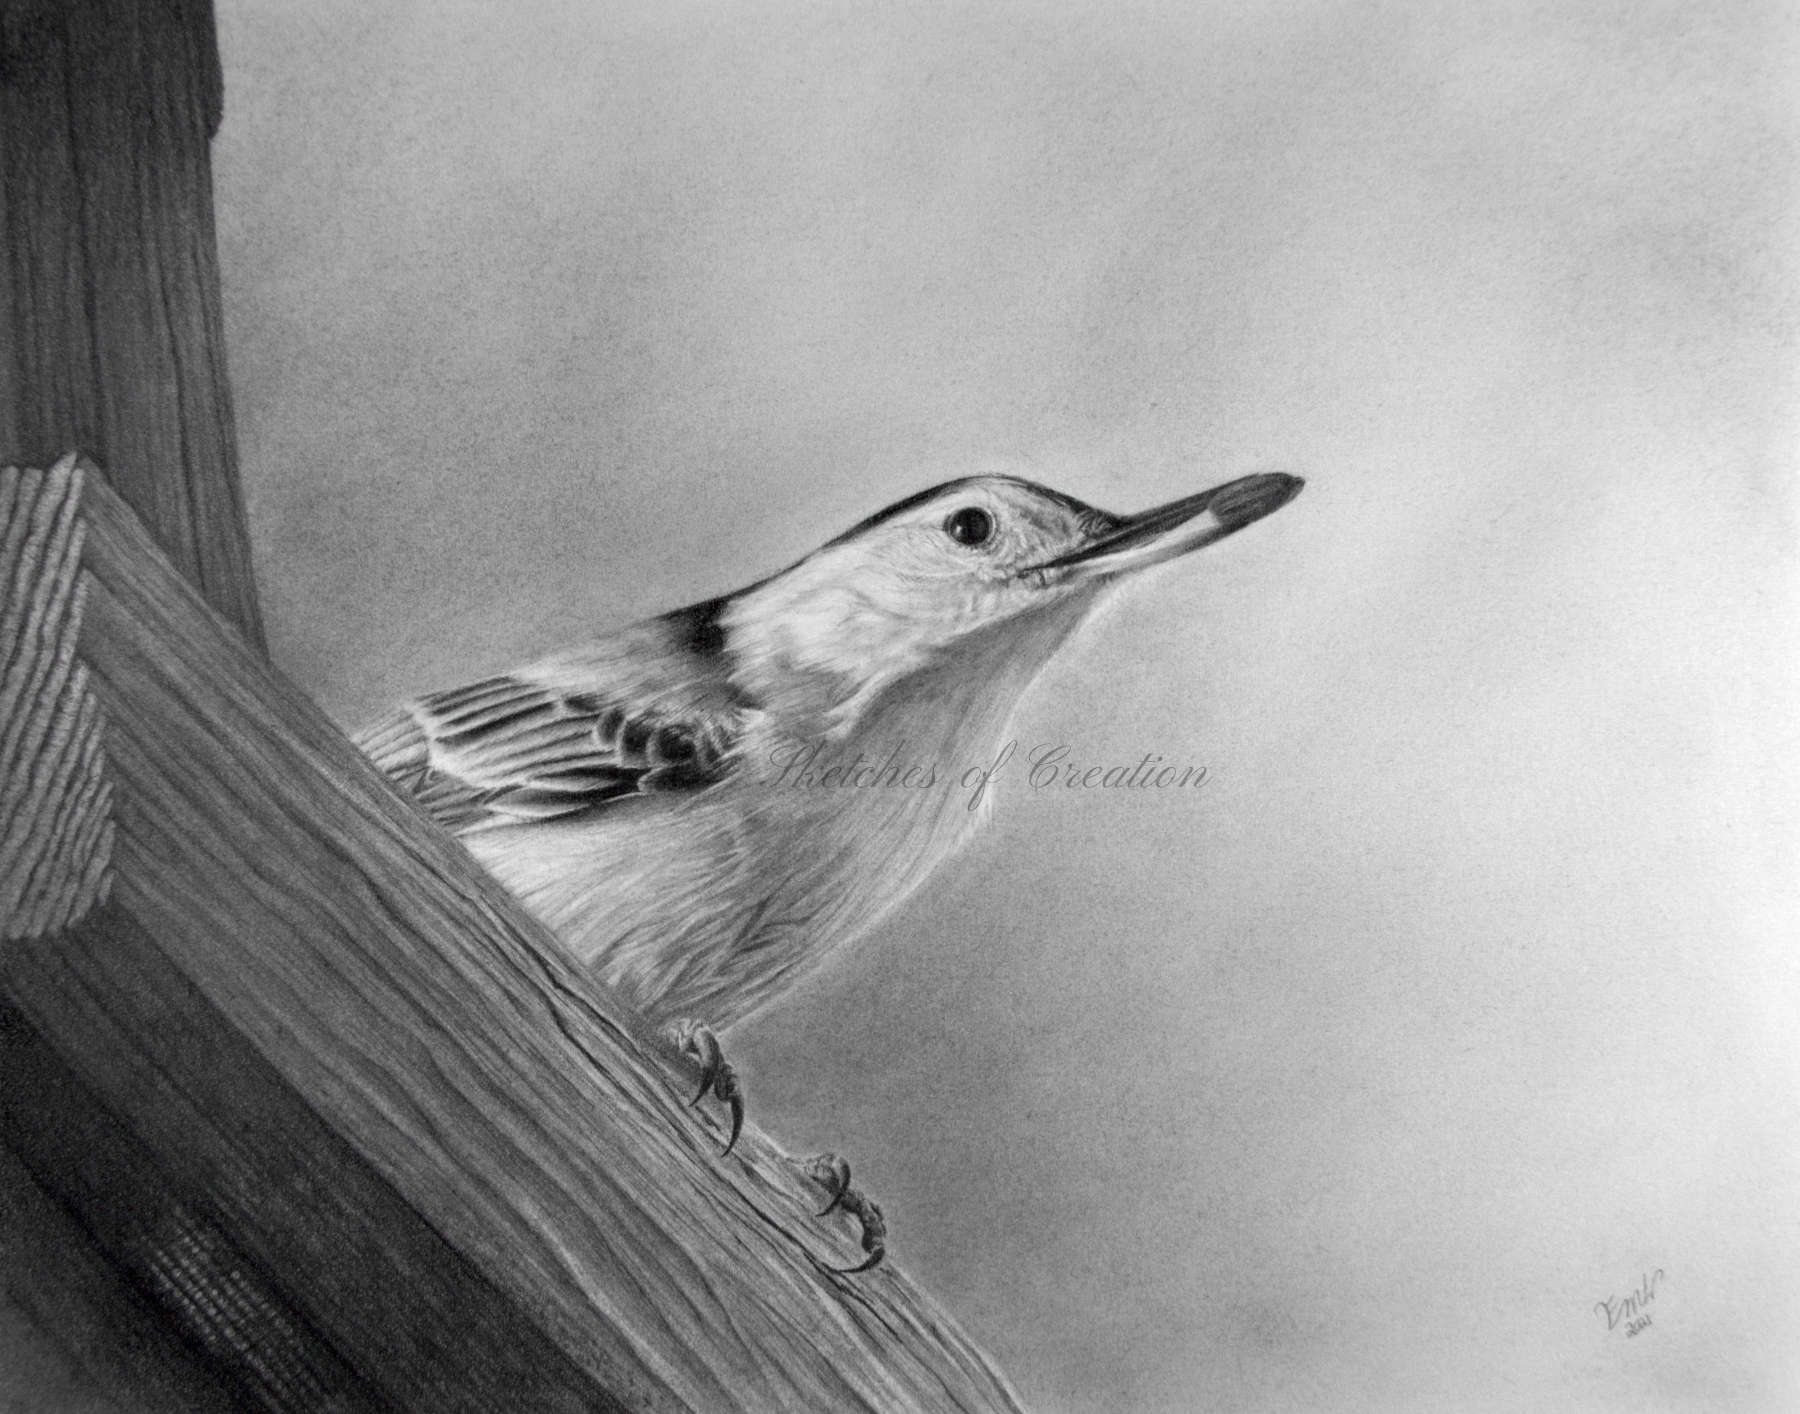 'Nuthatch' a drawing of a Nuthatch on a birdfeeder with a seed in his beak. approximately 8x10 inches plus deckled edge. Completed June 2021